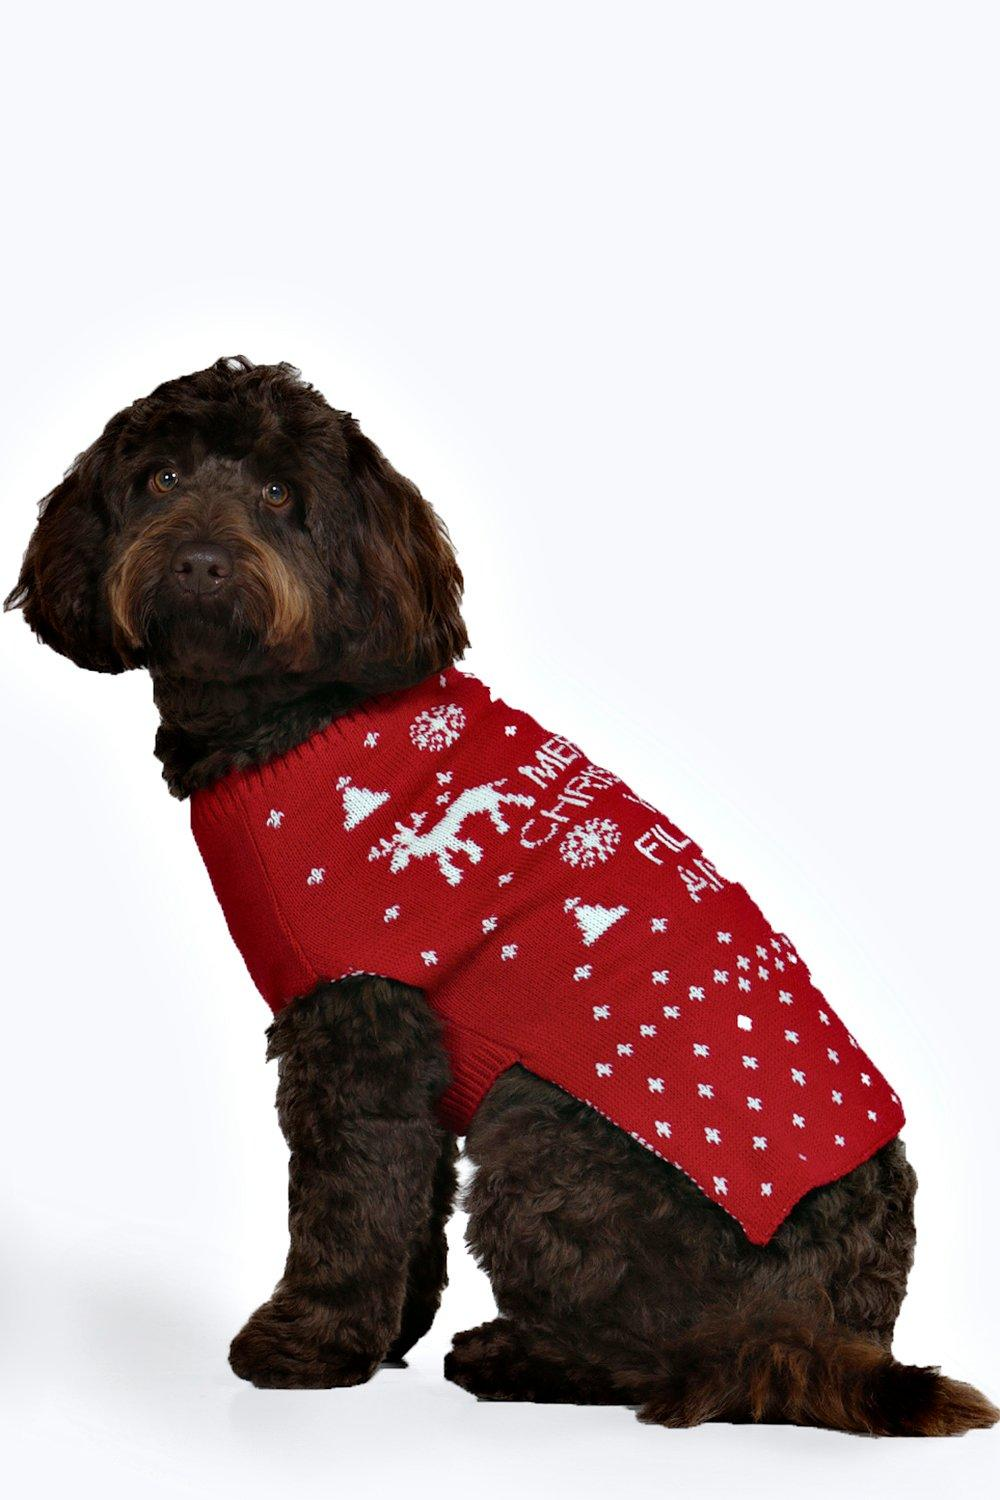 merry christmas you filthy animal jumper